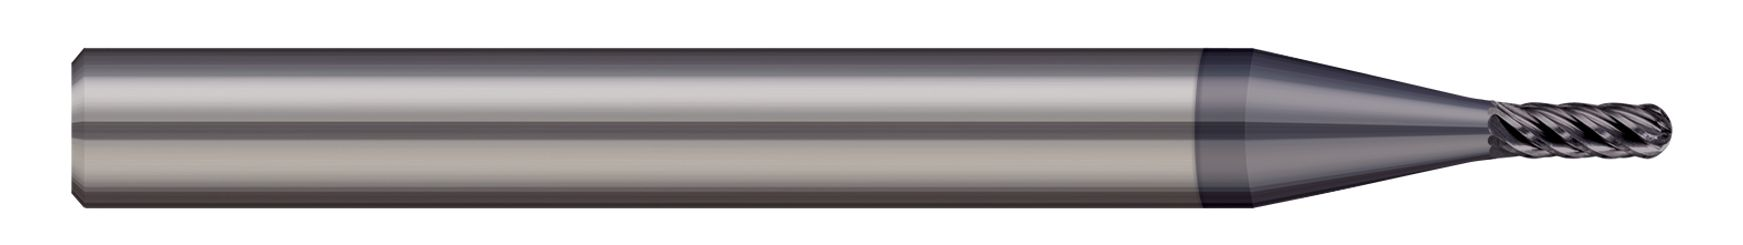 End Mills for Hardened Steels - Ball - For Steels Up to 55 Rc